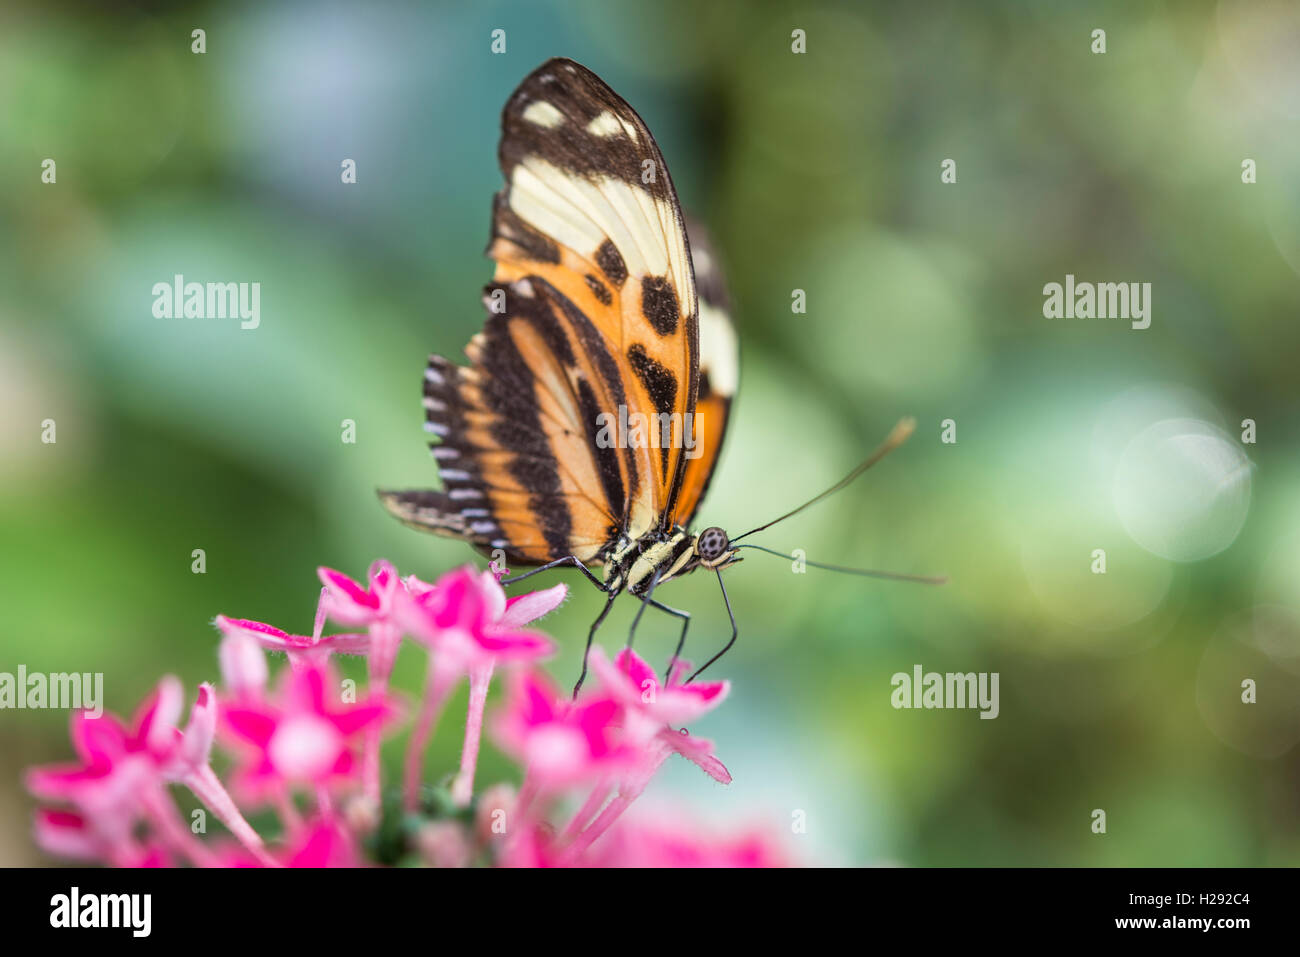 Xanthocles longwing (Heliconius xanthocles) sitting on pink flower, captive Stock Photo